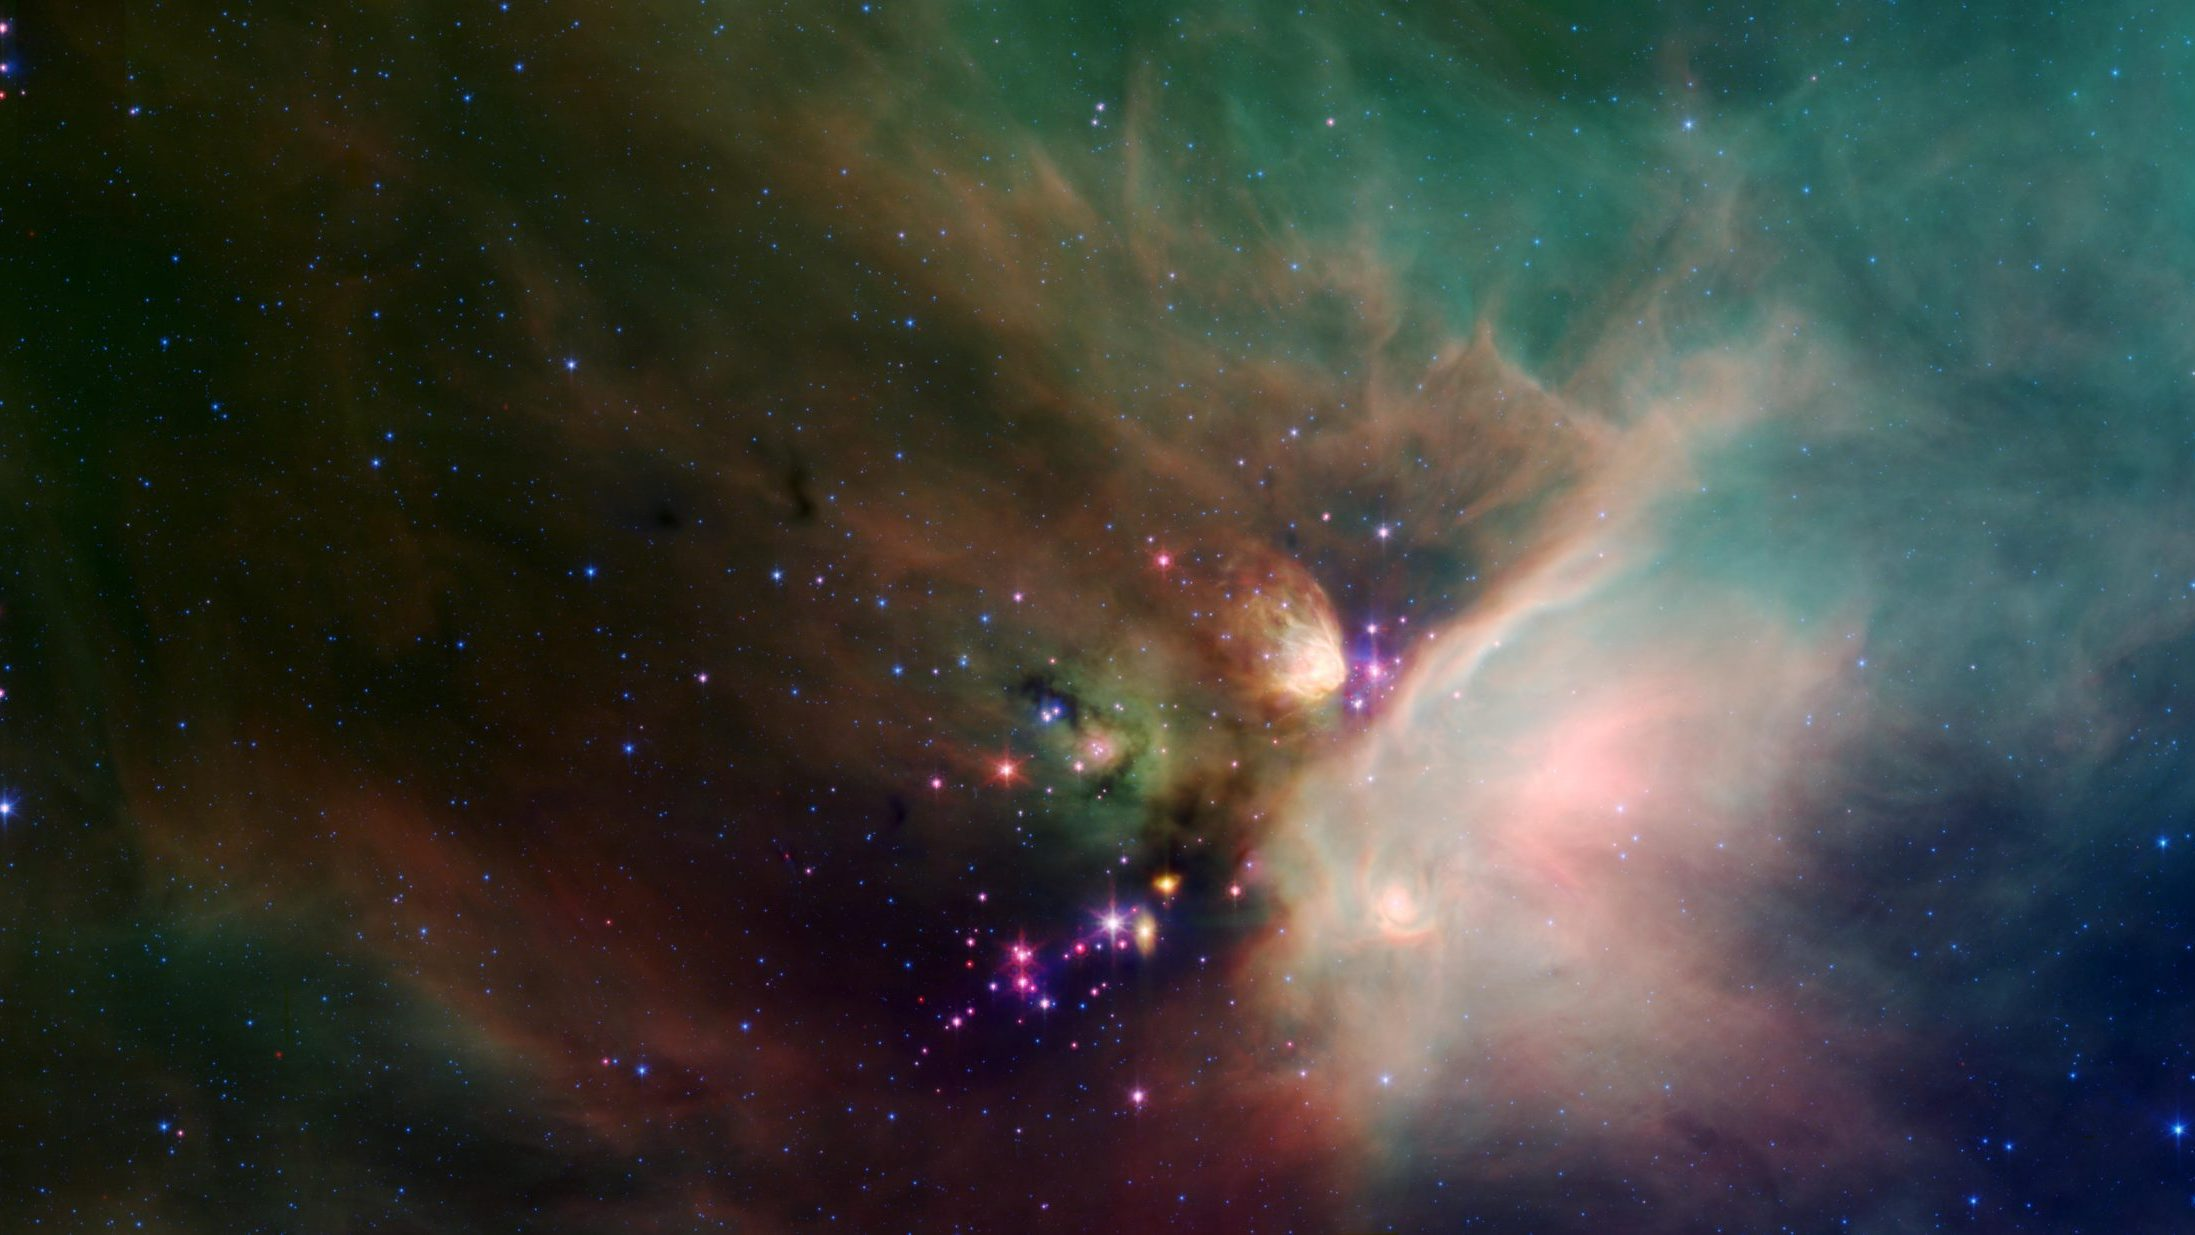 Image: Image from NASA of newborn stars in a cloud of dust